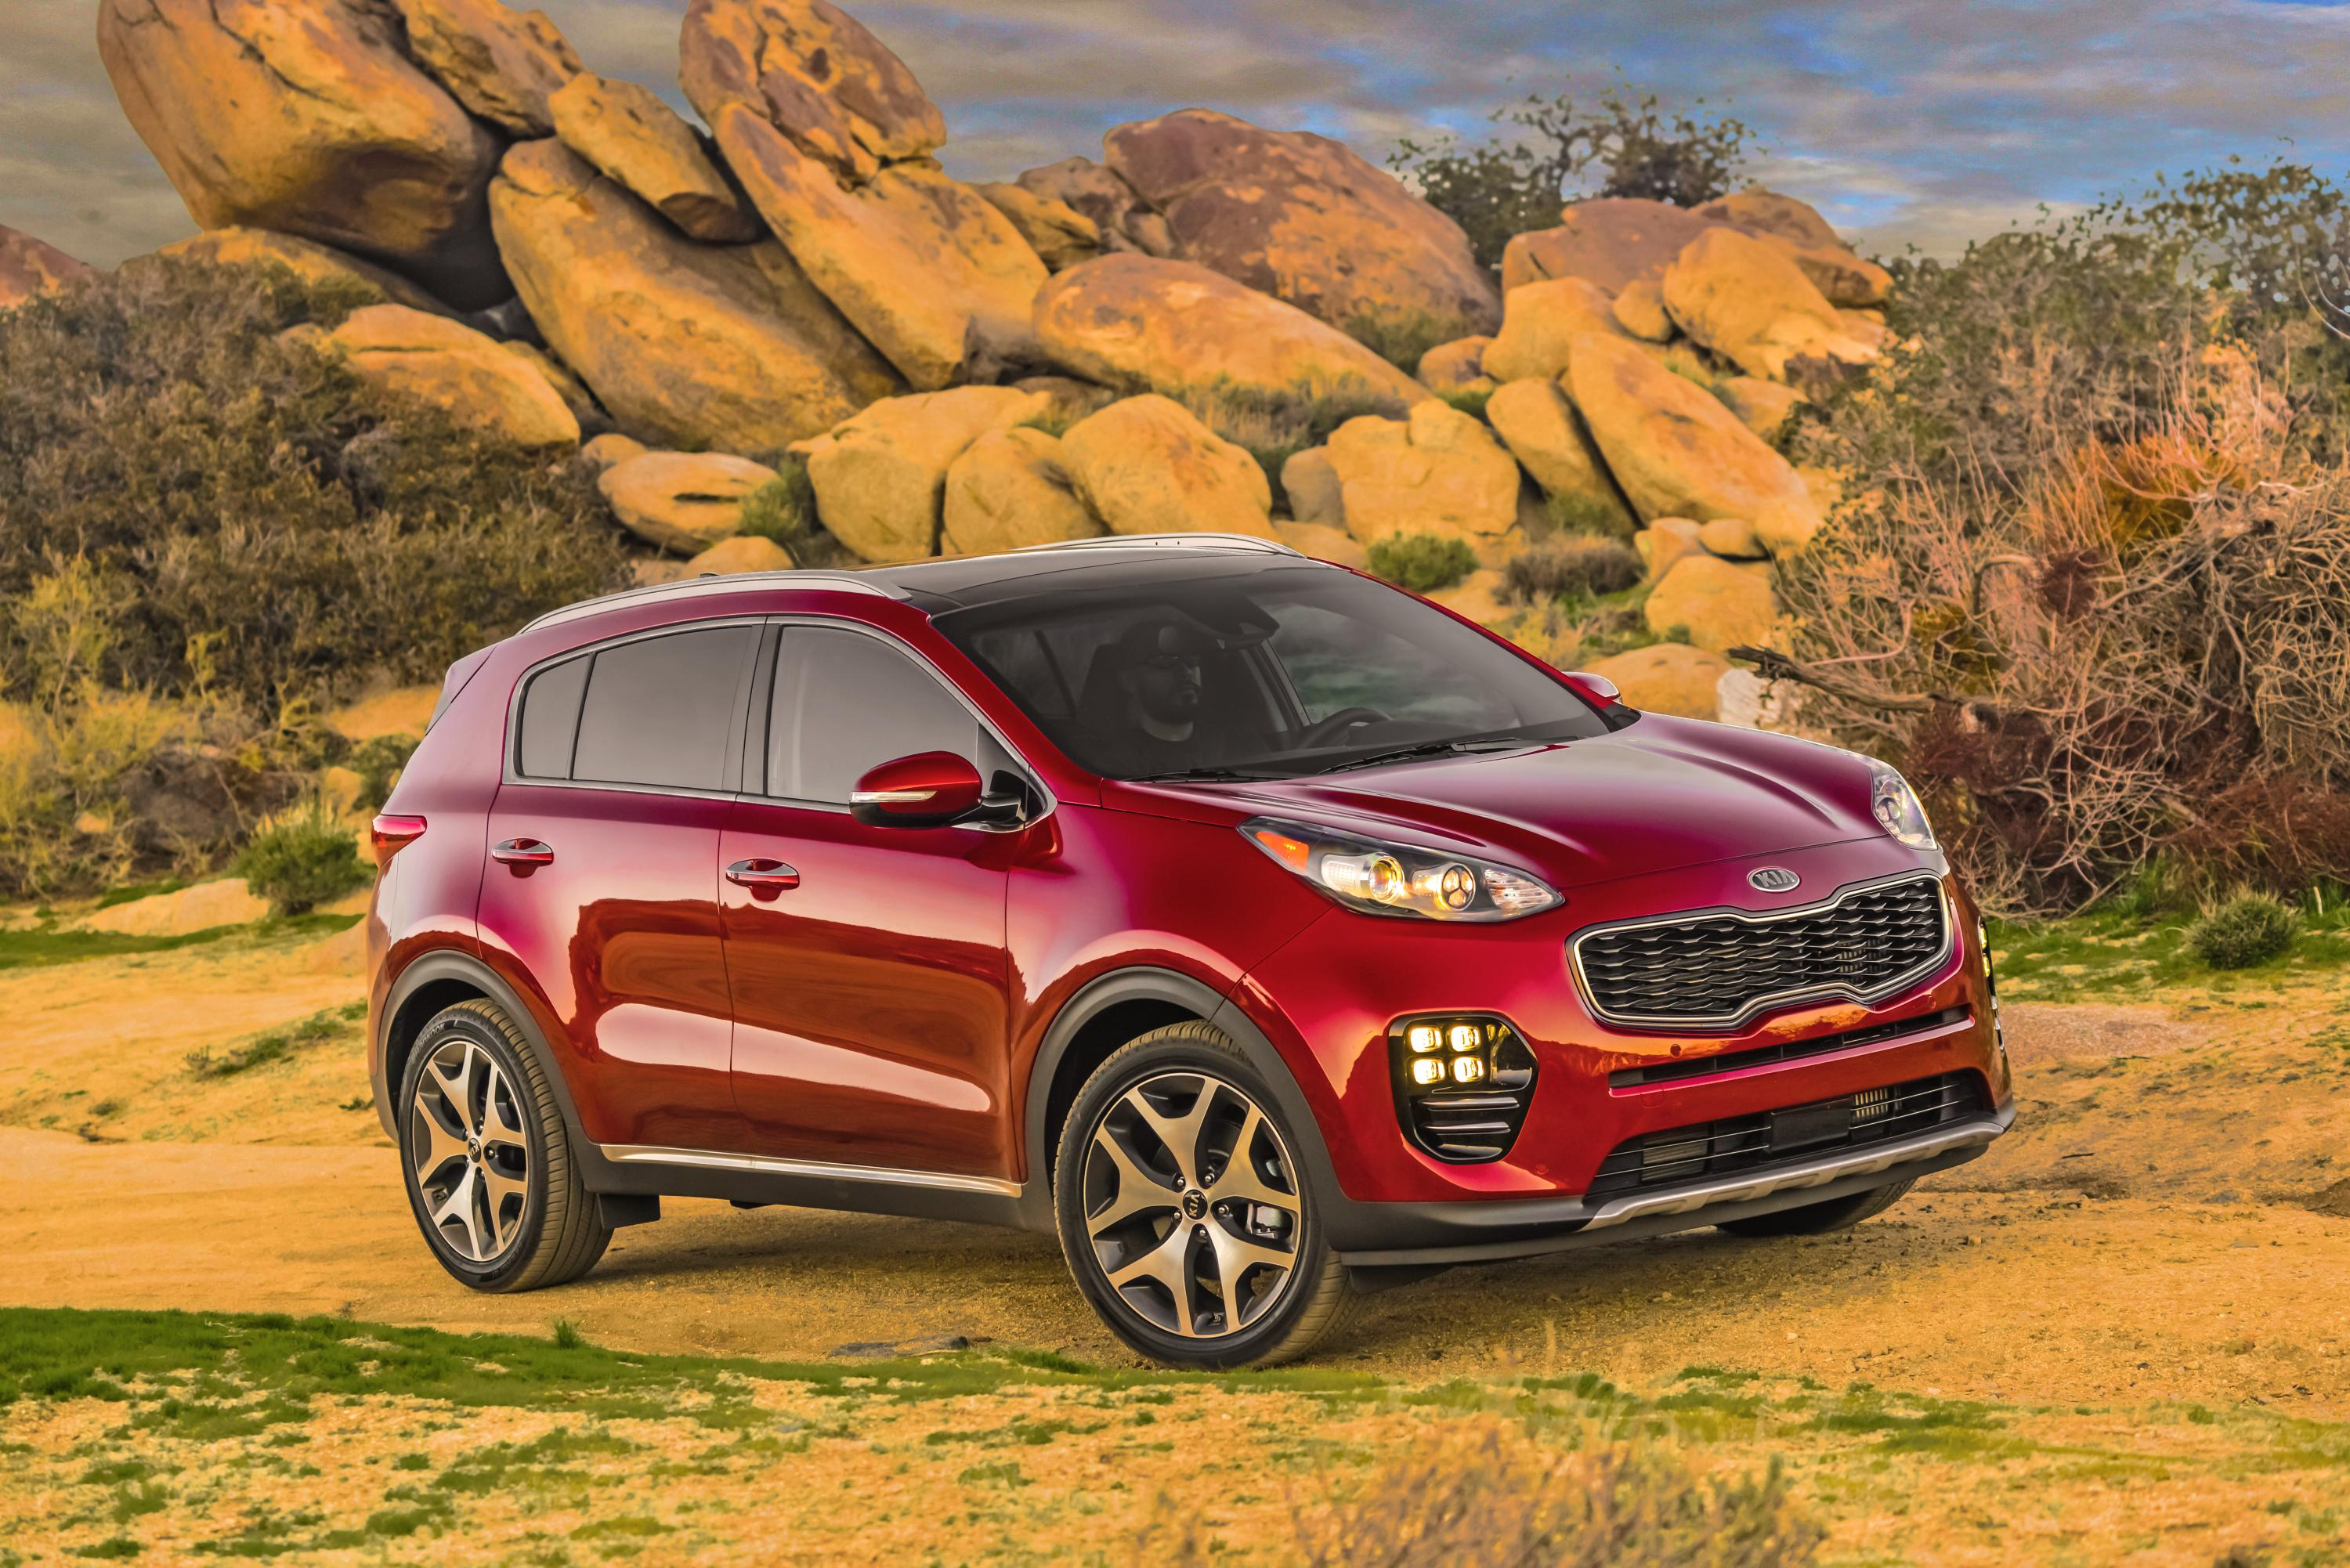 Kia Sportage, one of Kia's top selling vehicles in calendar year 2017